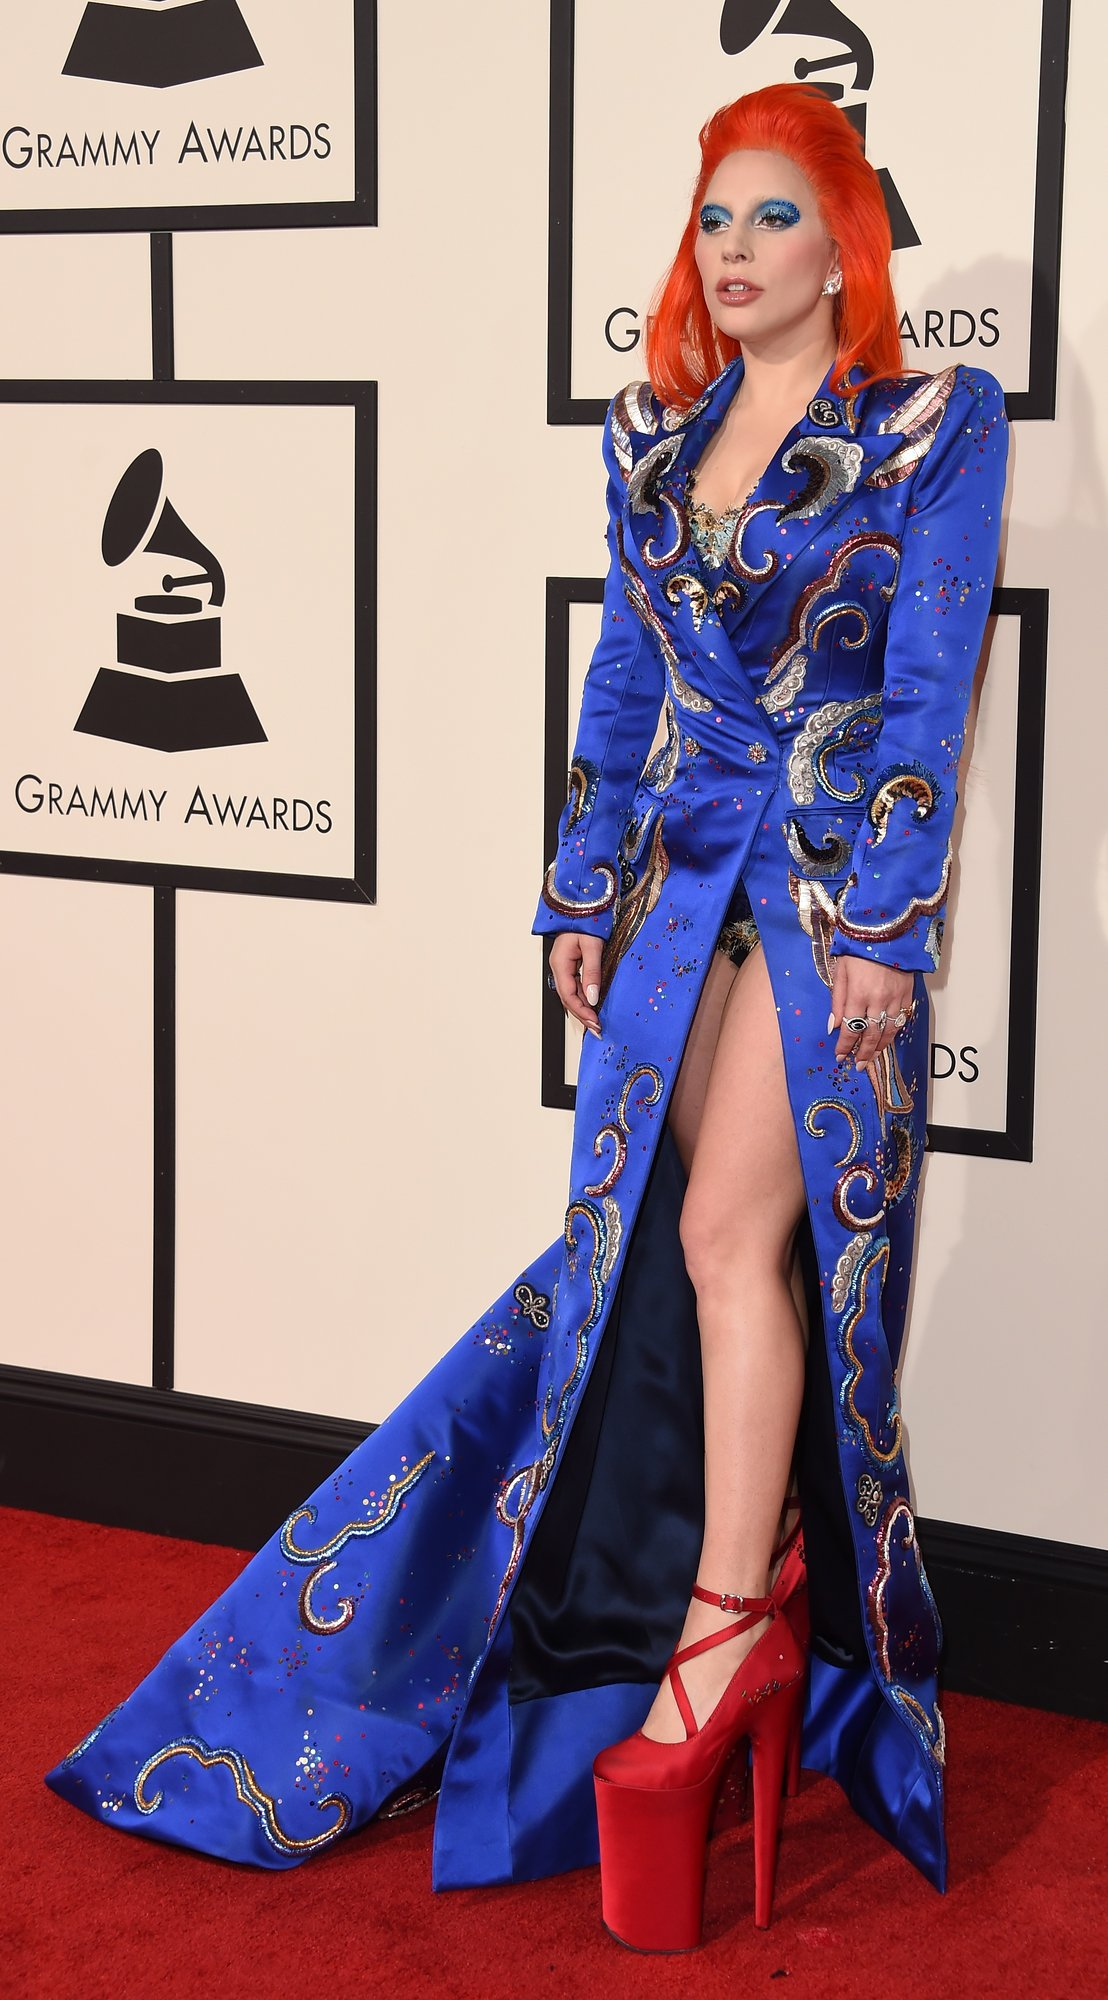 lady gaga grammys red carpet 2016 8d46c